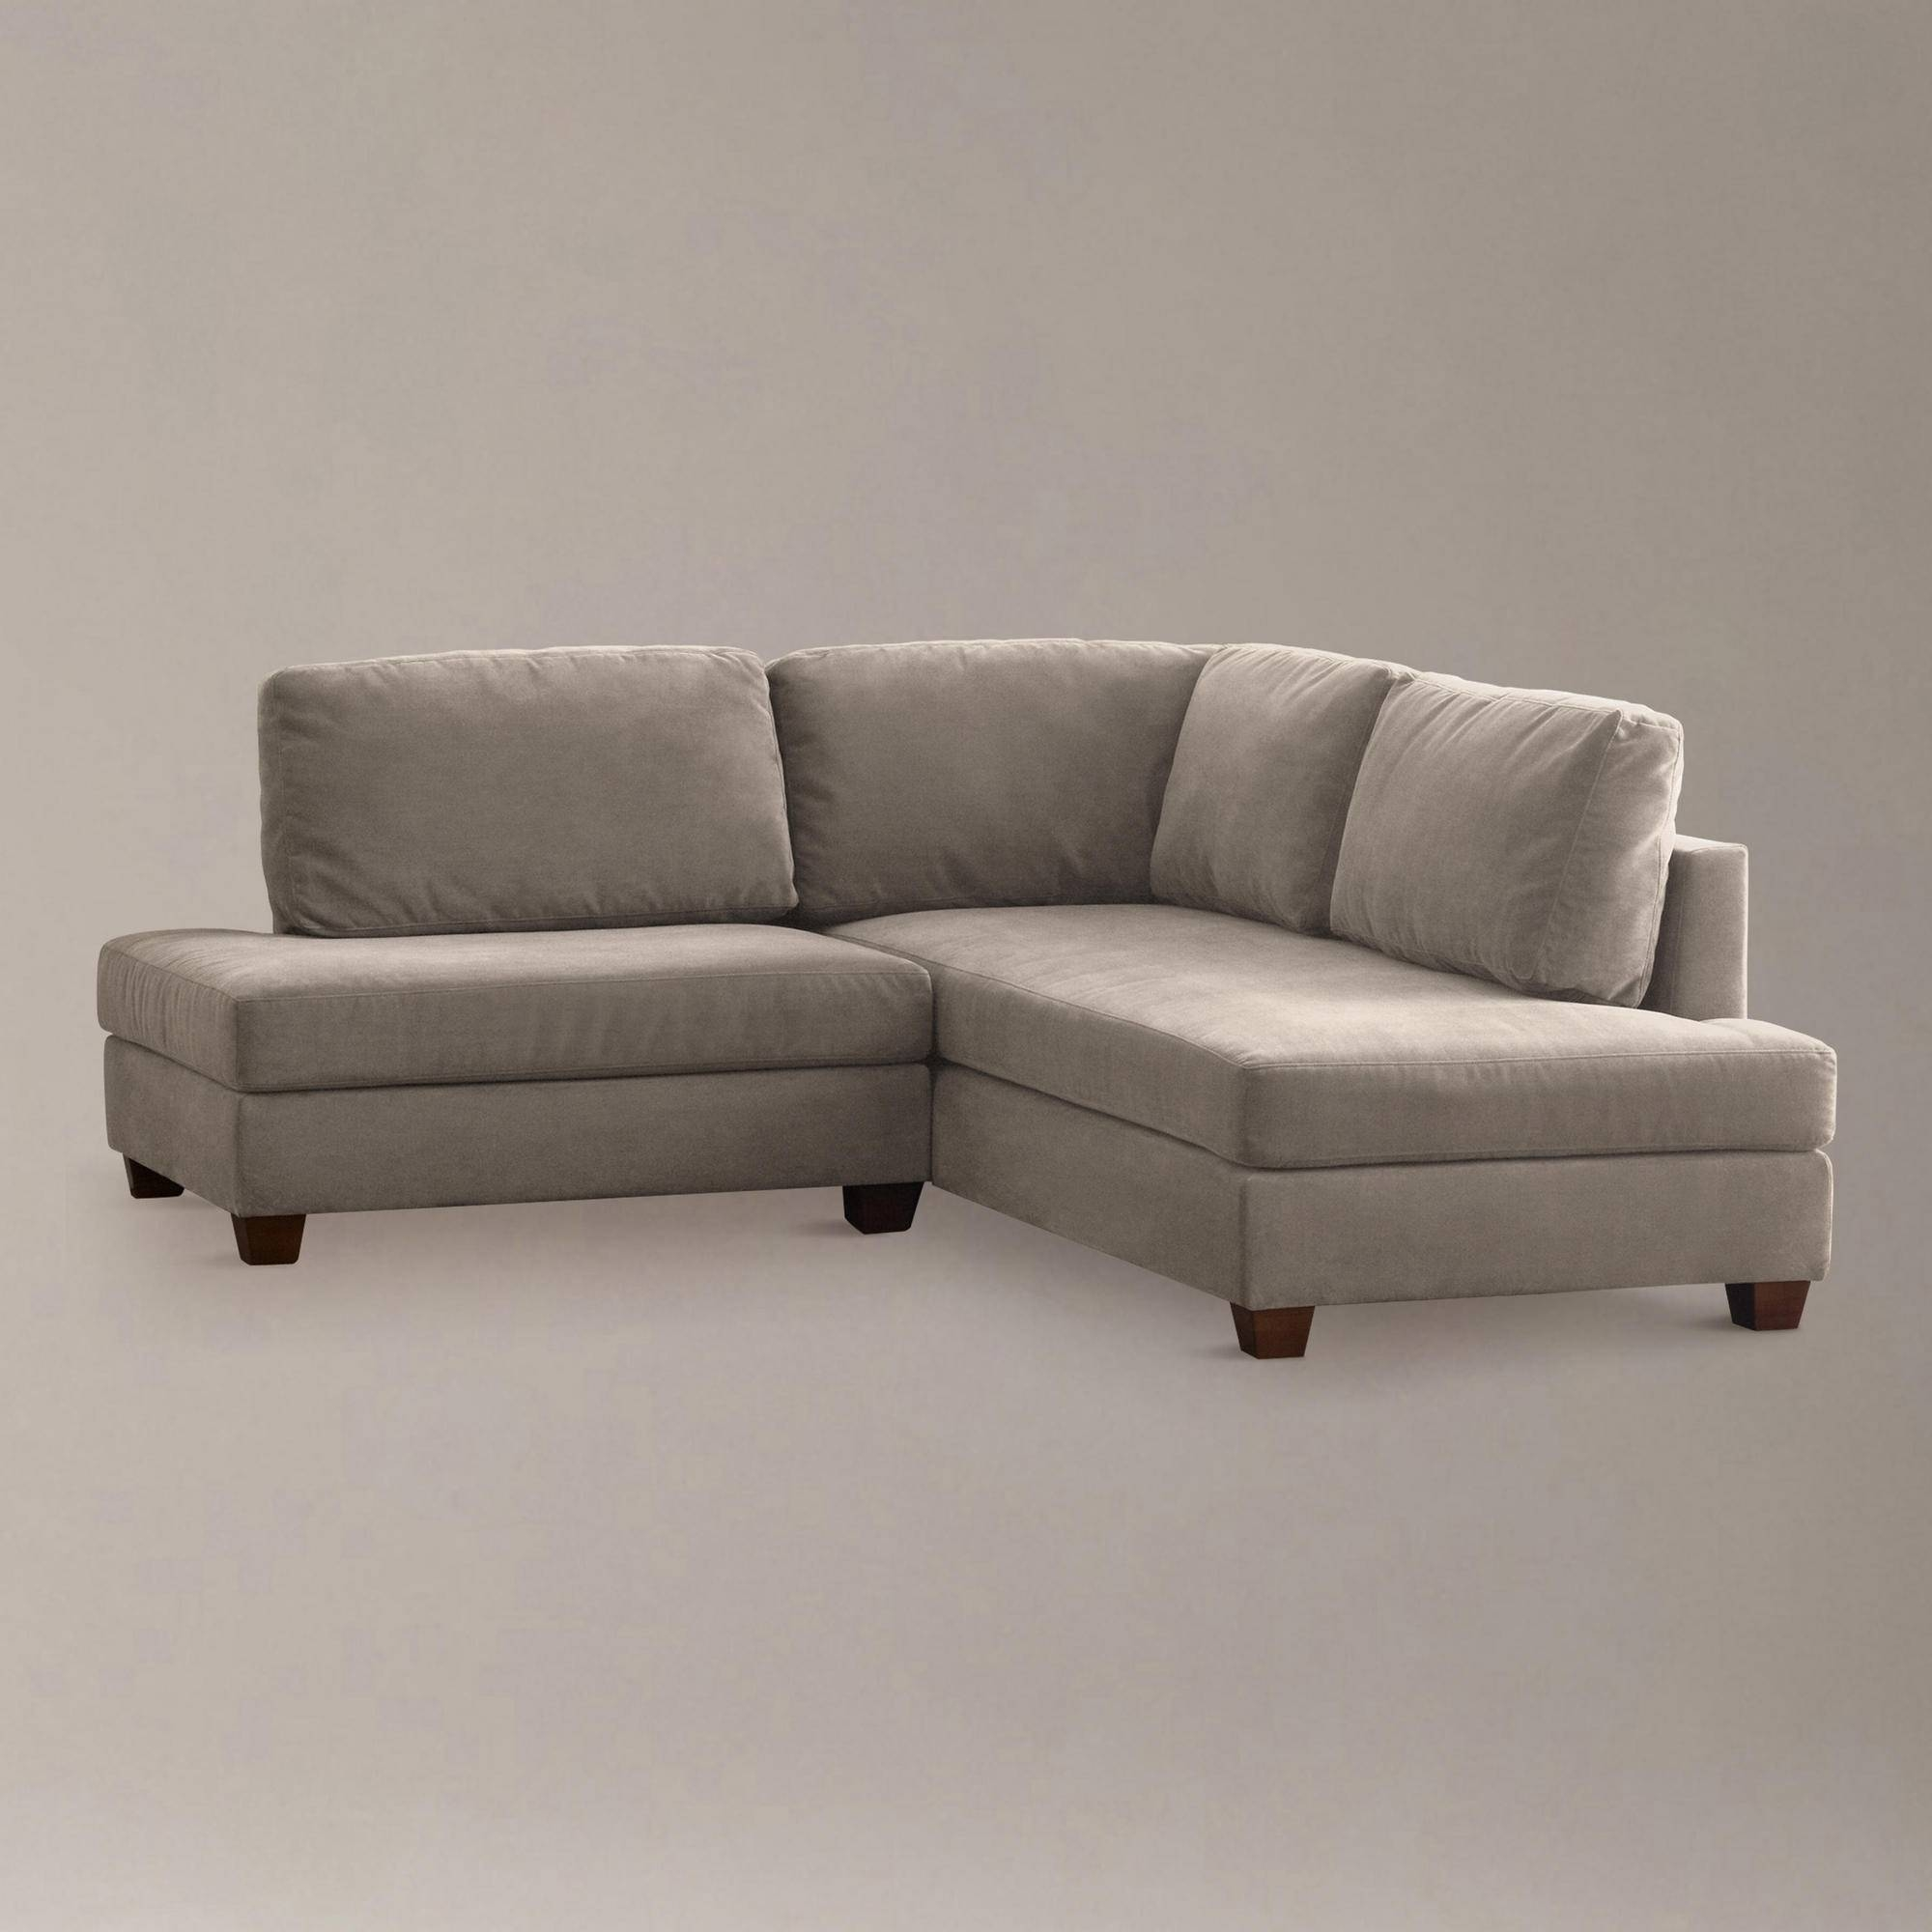 Lee Sofas On Sale | Tehranmix Decoration throughout Lee Industries Sectional Sofa (Image 21 of 25)